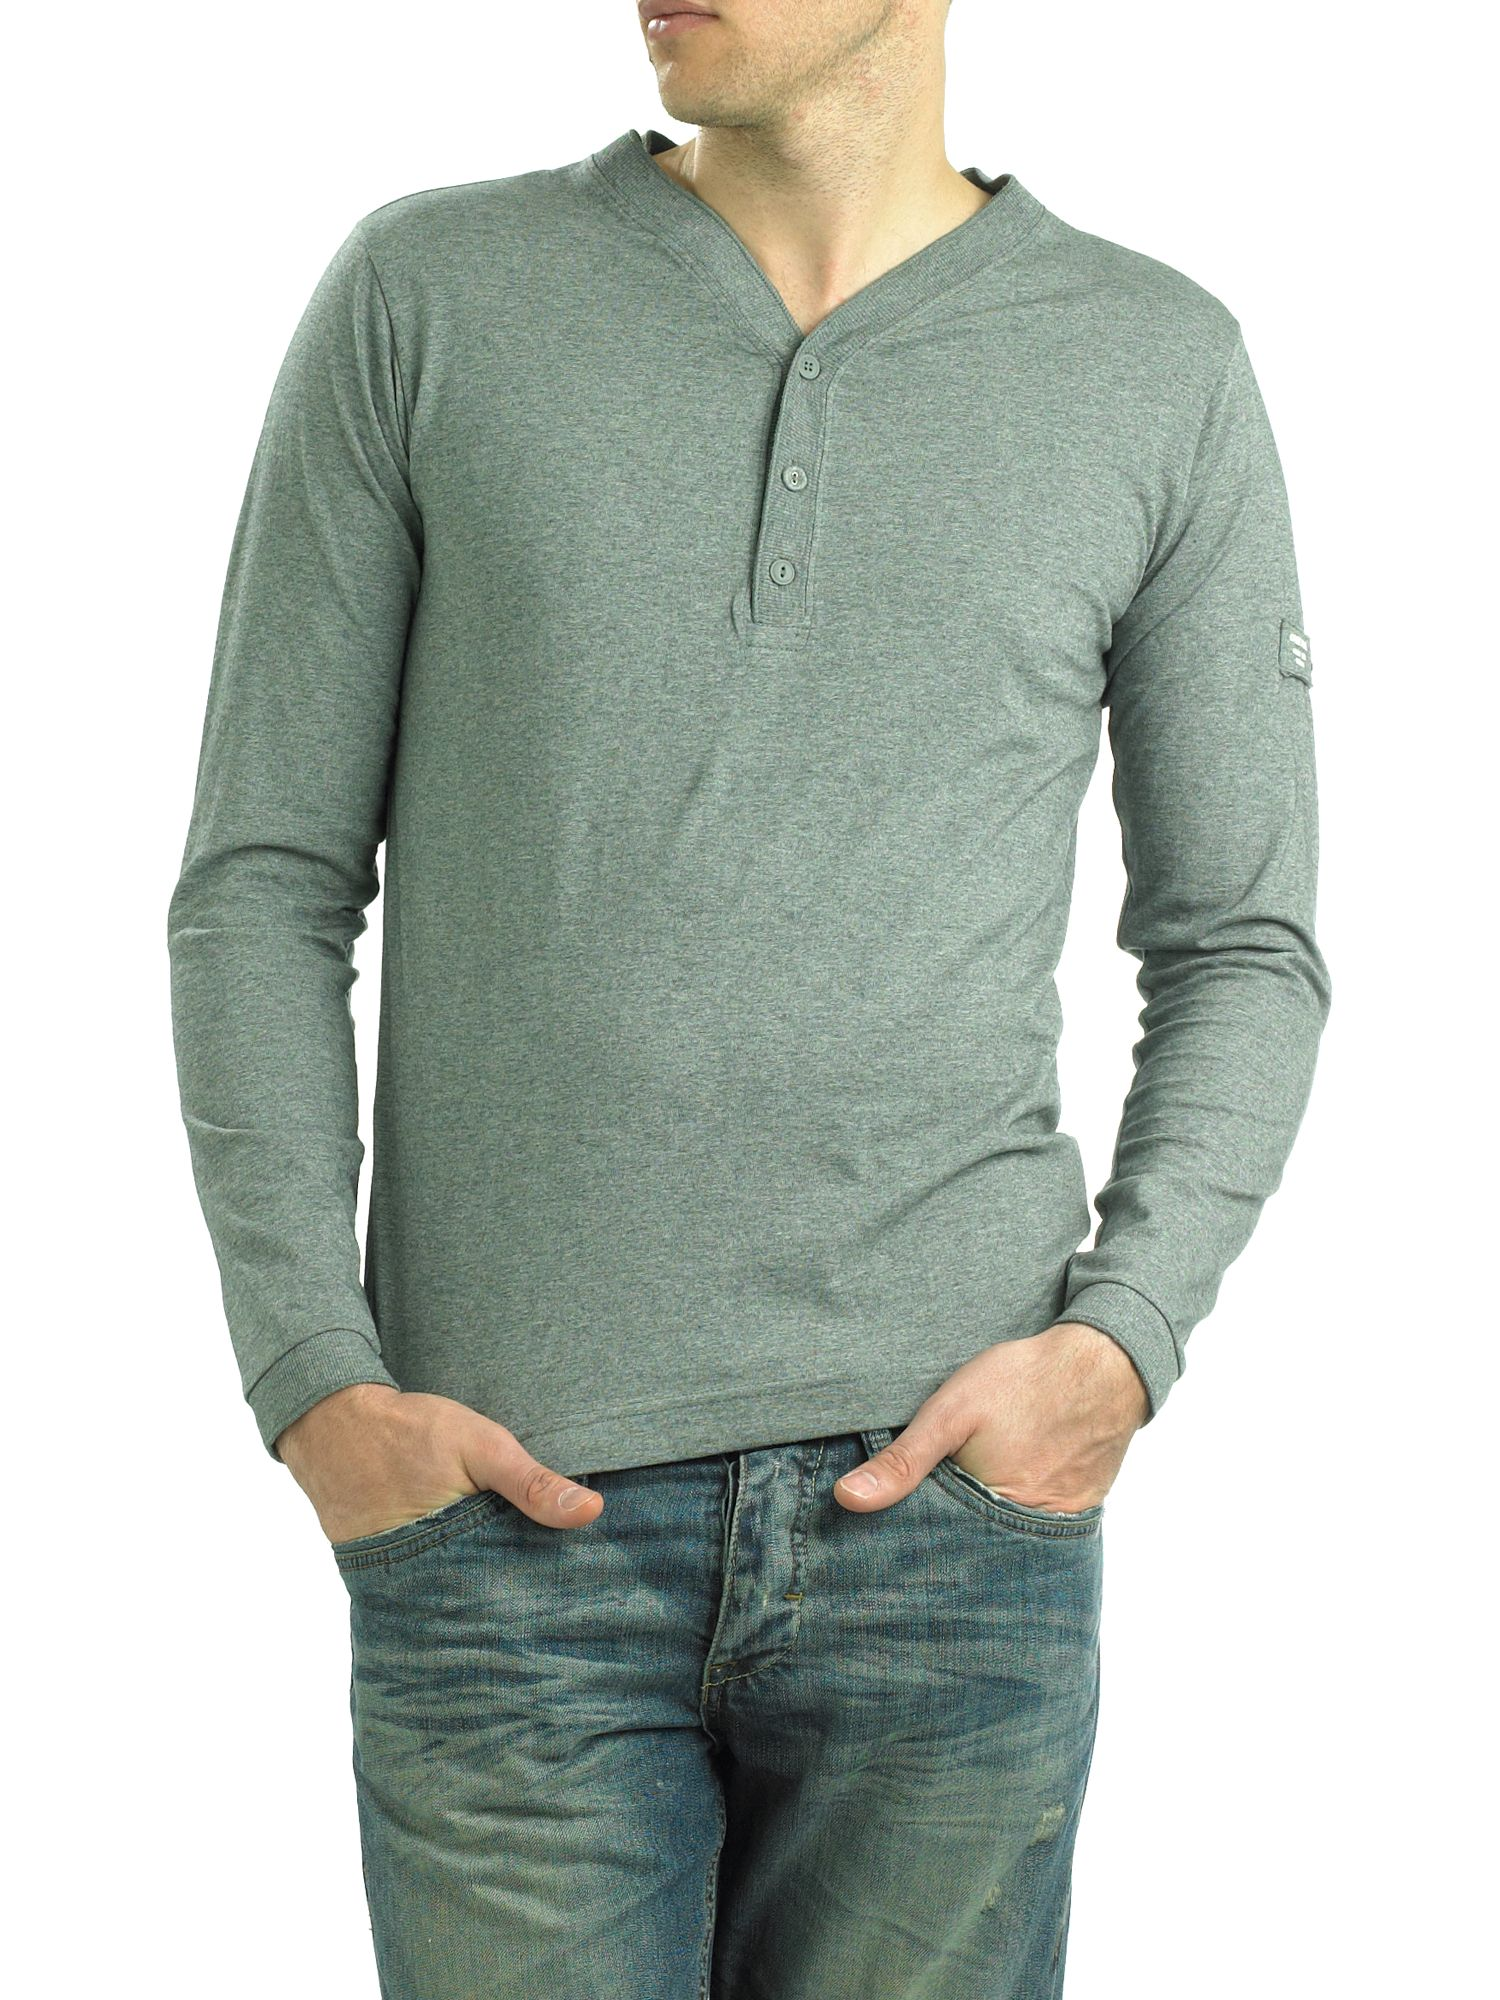 Diesel T-shirt Long sleeve Yneck product image